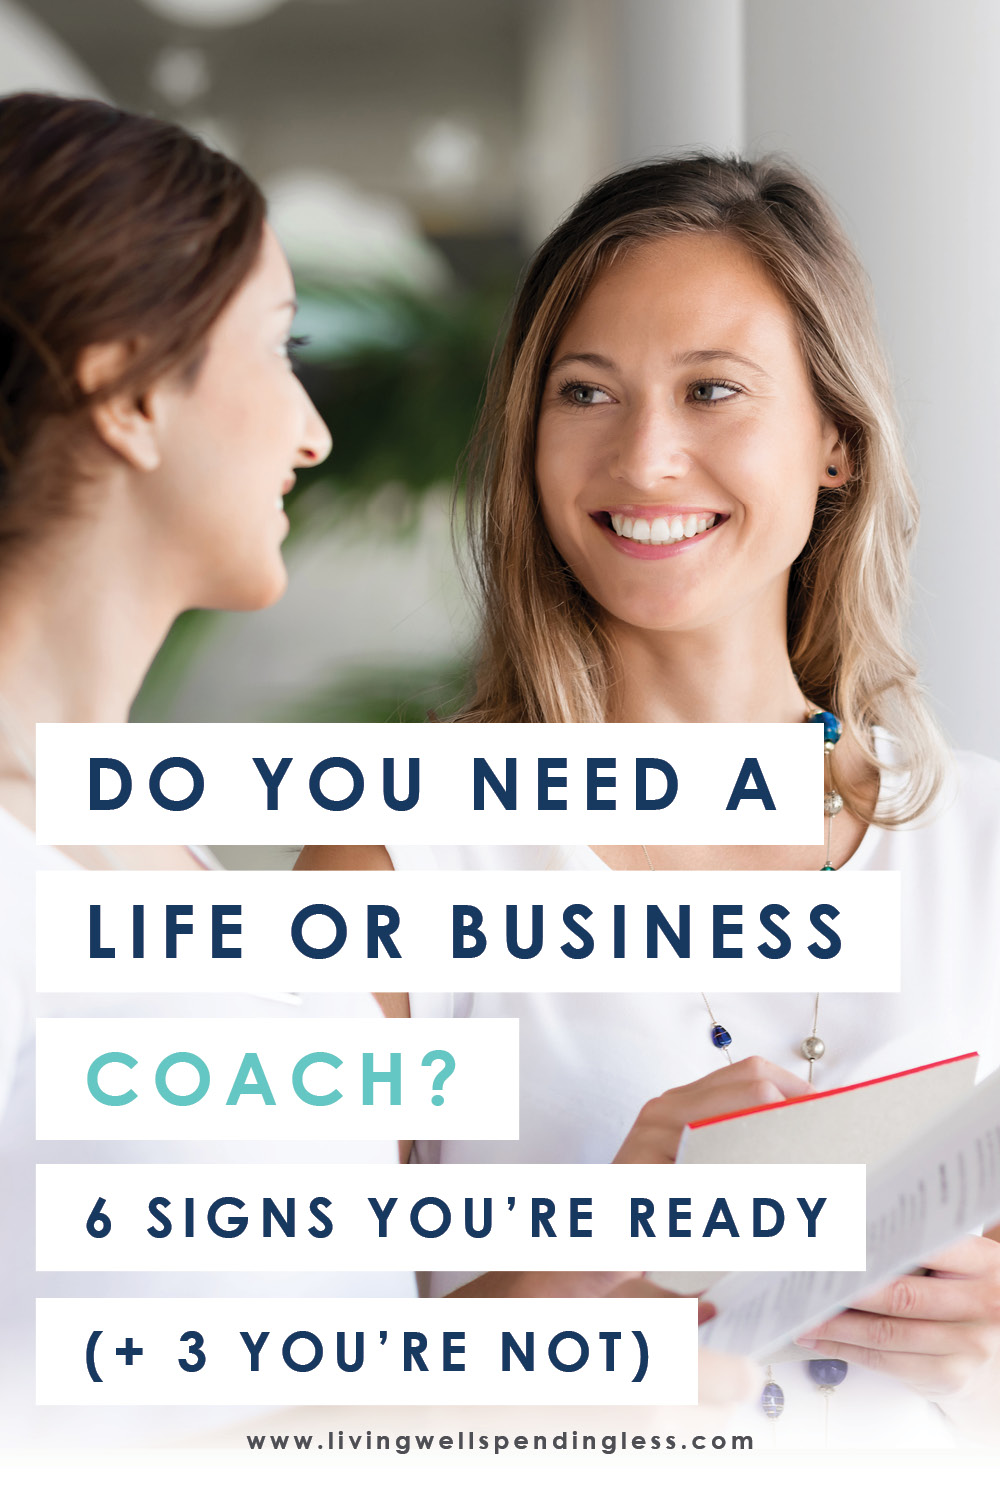 Life and business coaches seem to be everywhere these days, but is coaching really something that's worth paying for? That often depends on you, and where you want to go! If you've ever wondered whether coaching might be right for you, don't miss these six signs that will tell you whether you're ready (along with the three signs that will tell you you're not there quite yet!)